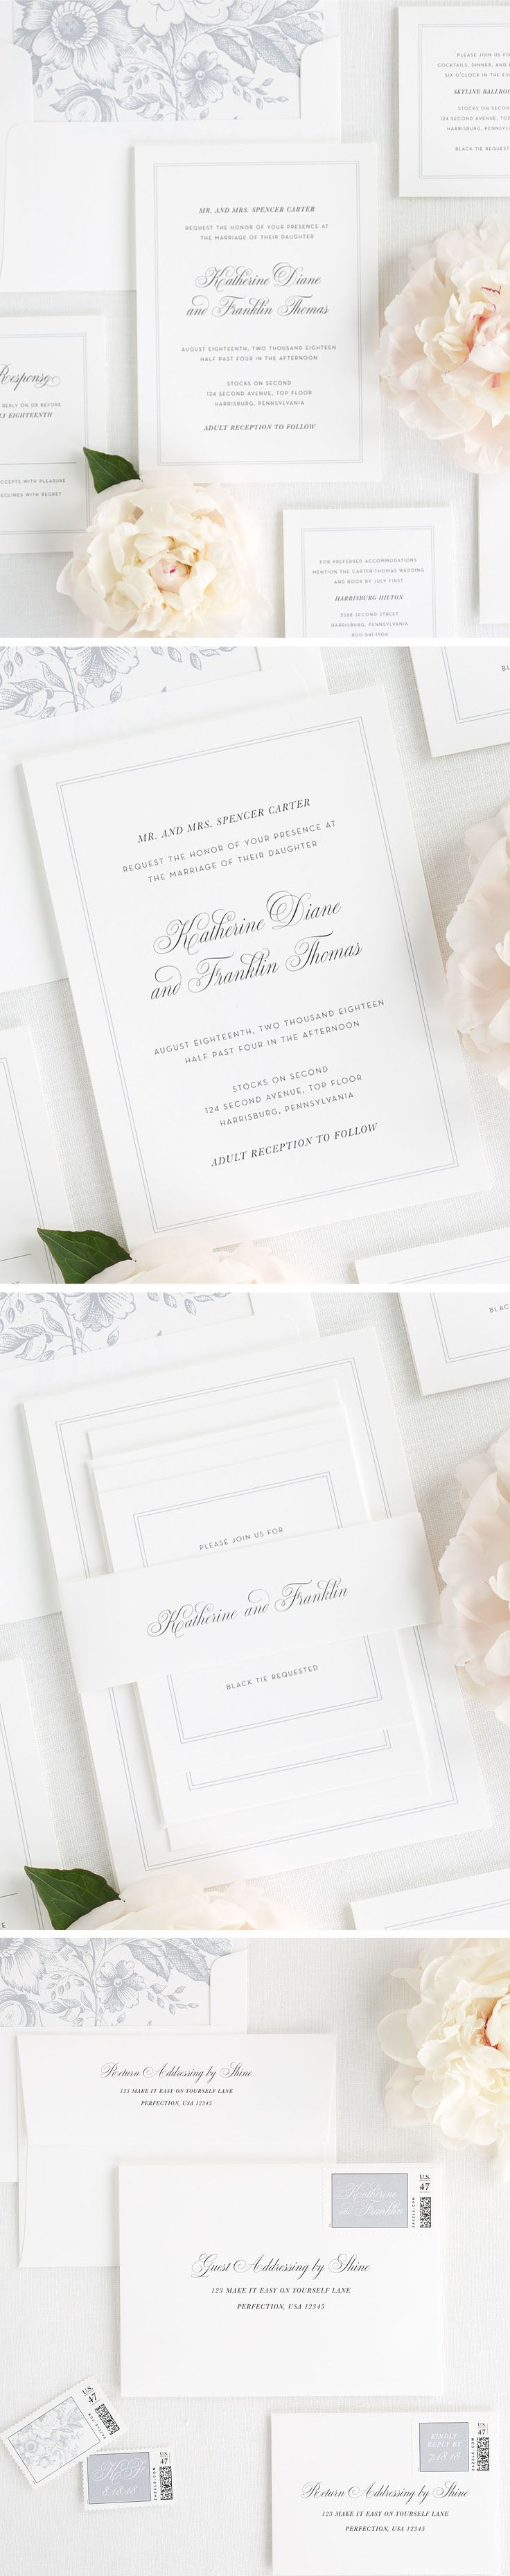 Simple and Classic wedding invitation with a thin double border. Complete with a floral envelope liner in dove gray and a classic white belly band. Create a consistent look throughout your stationery with guest addressing and custom designed postage! Create your dream invitations with Shine- wording is fully customizable and we have 40+ ink options to choose from!